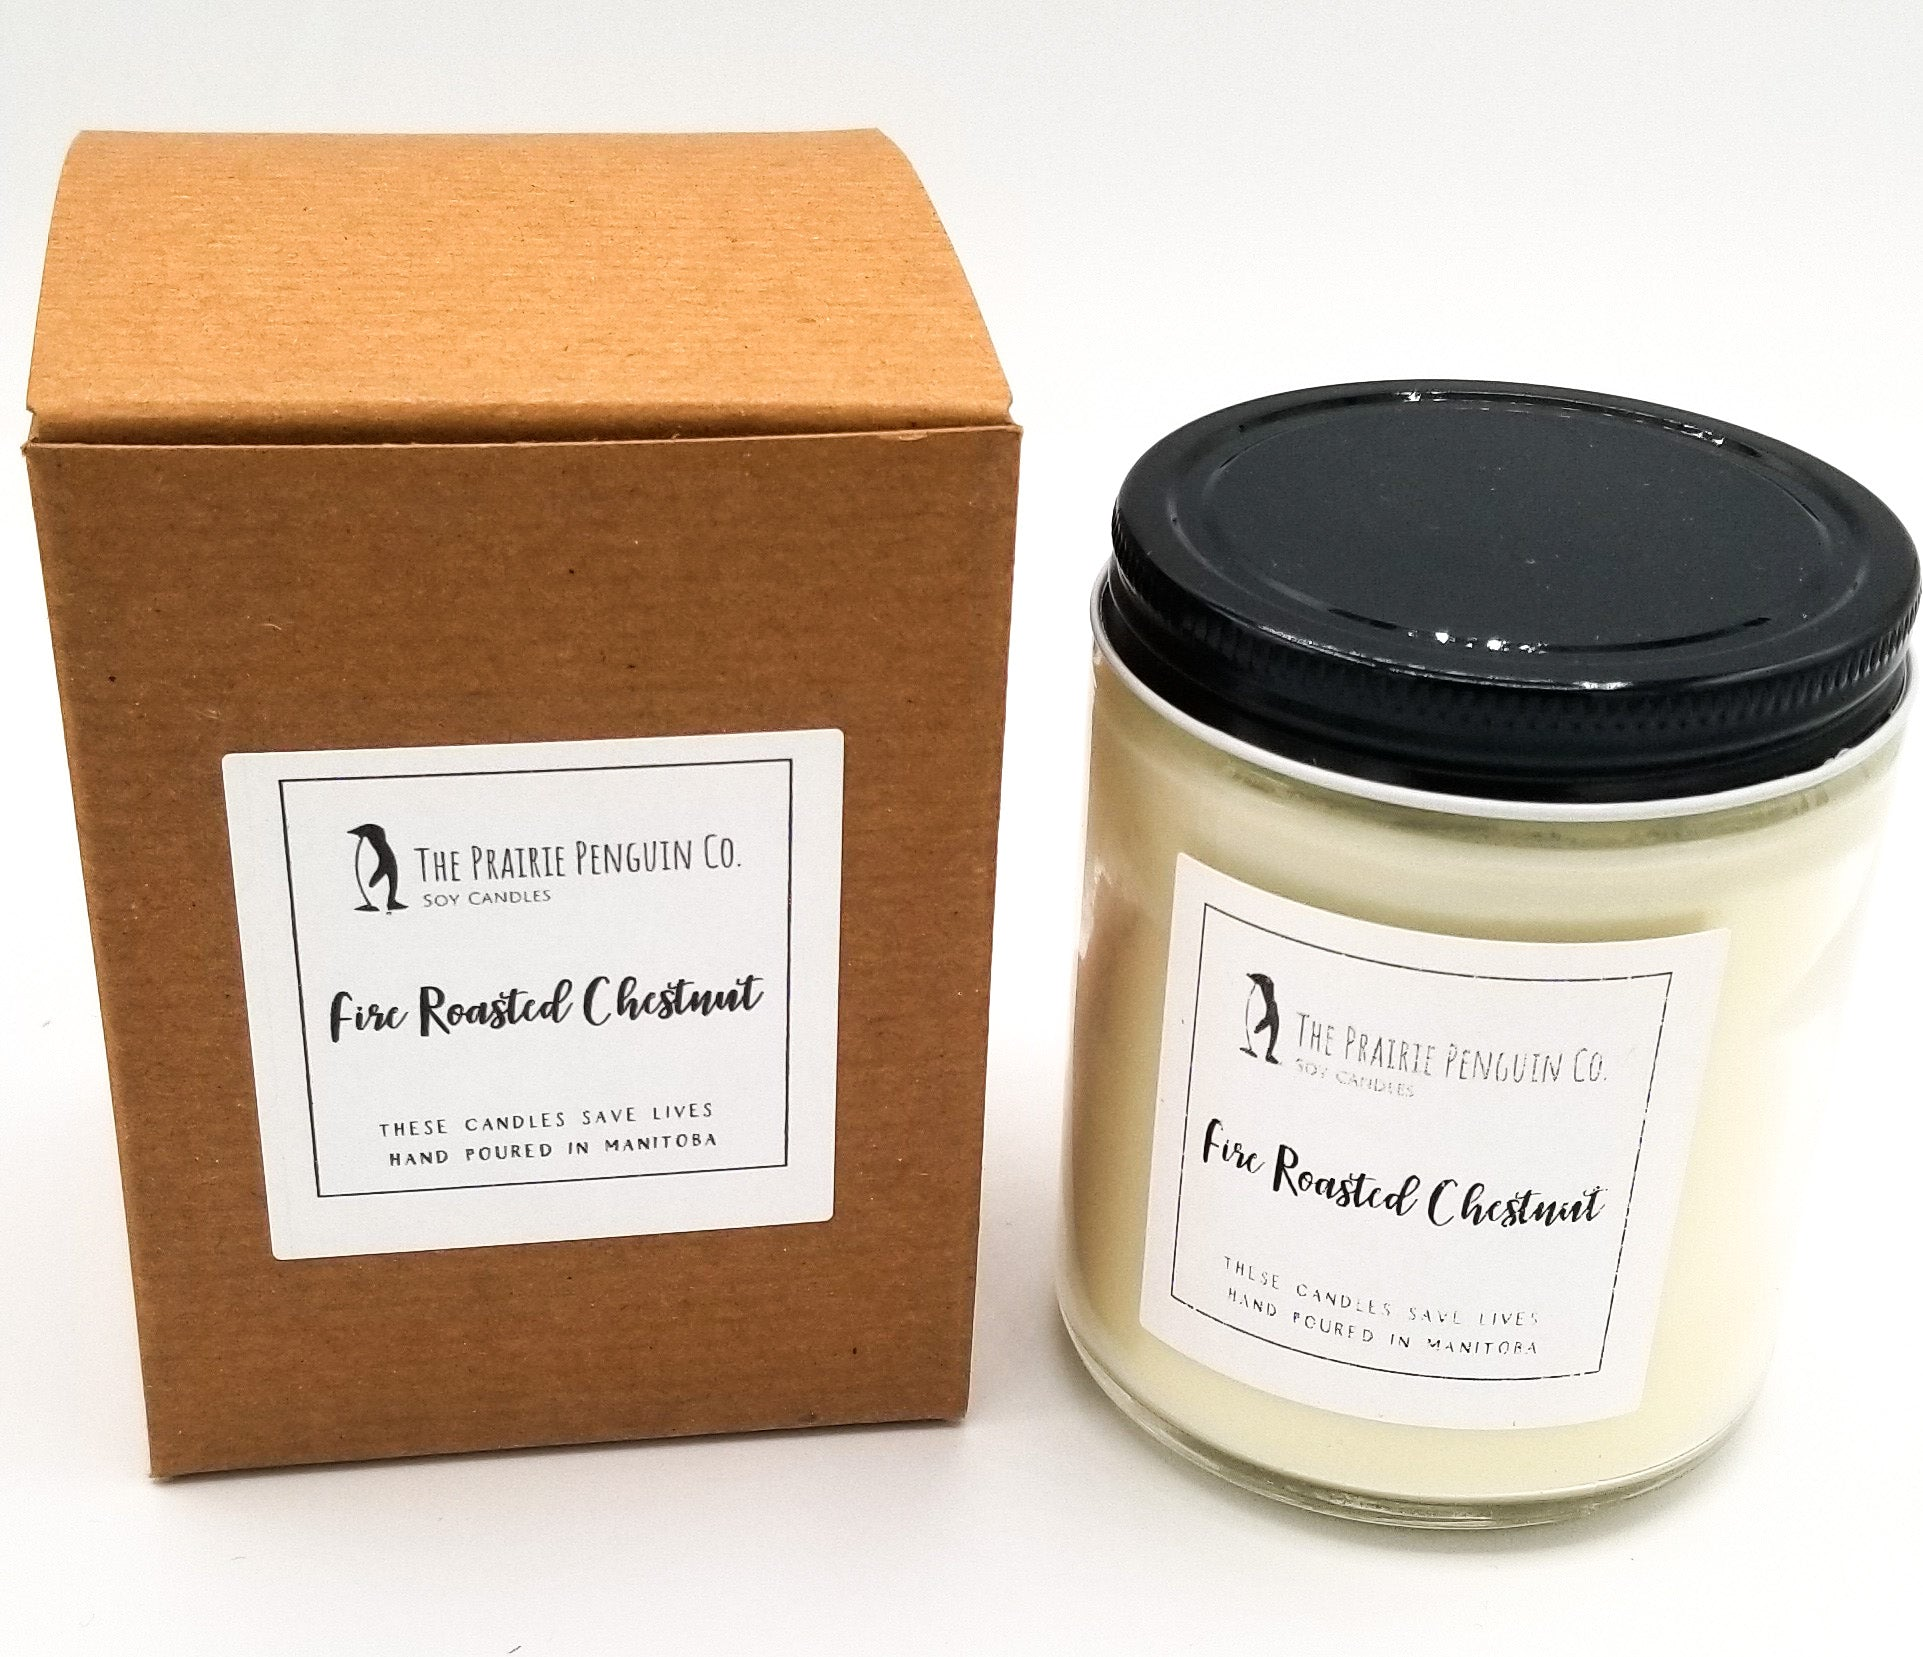 Fire Roasted Chestnut Candle 8oz By The Prairie Penguin Co